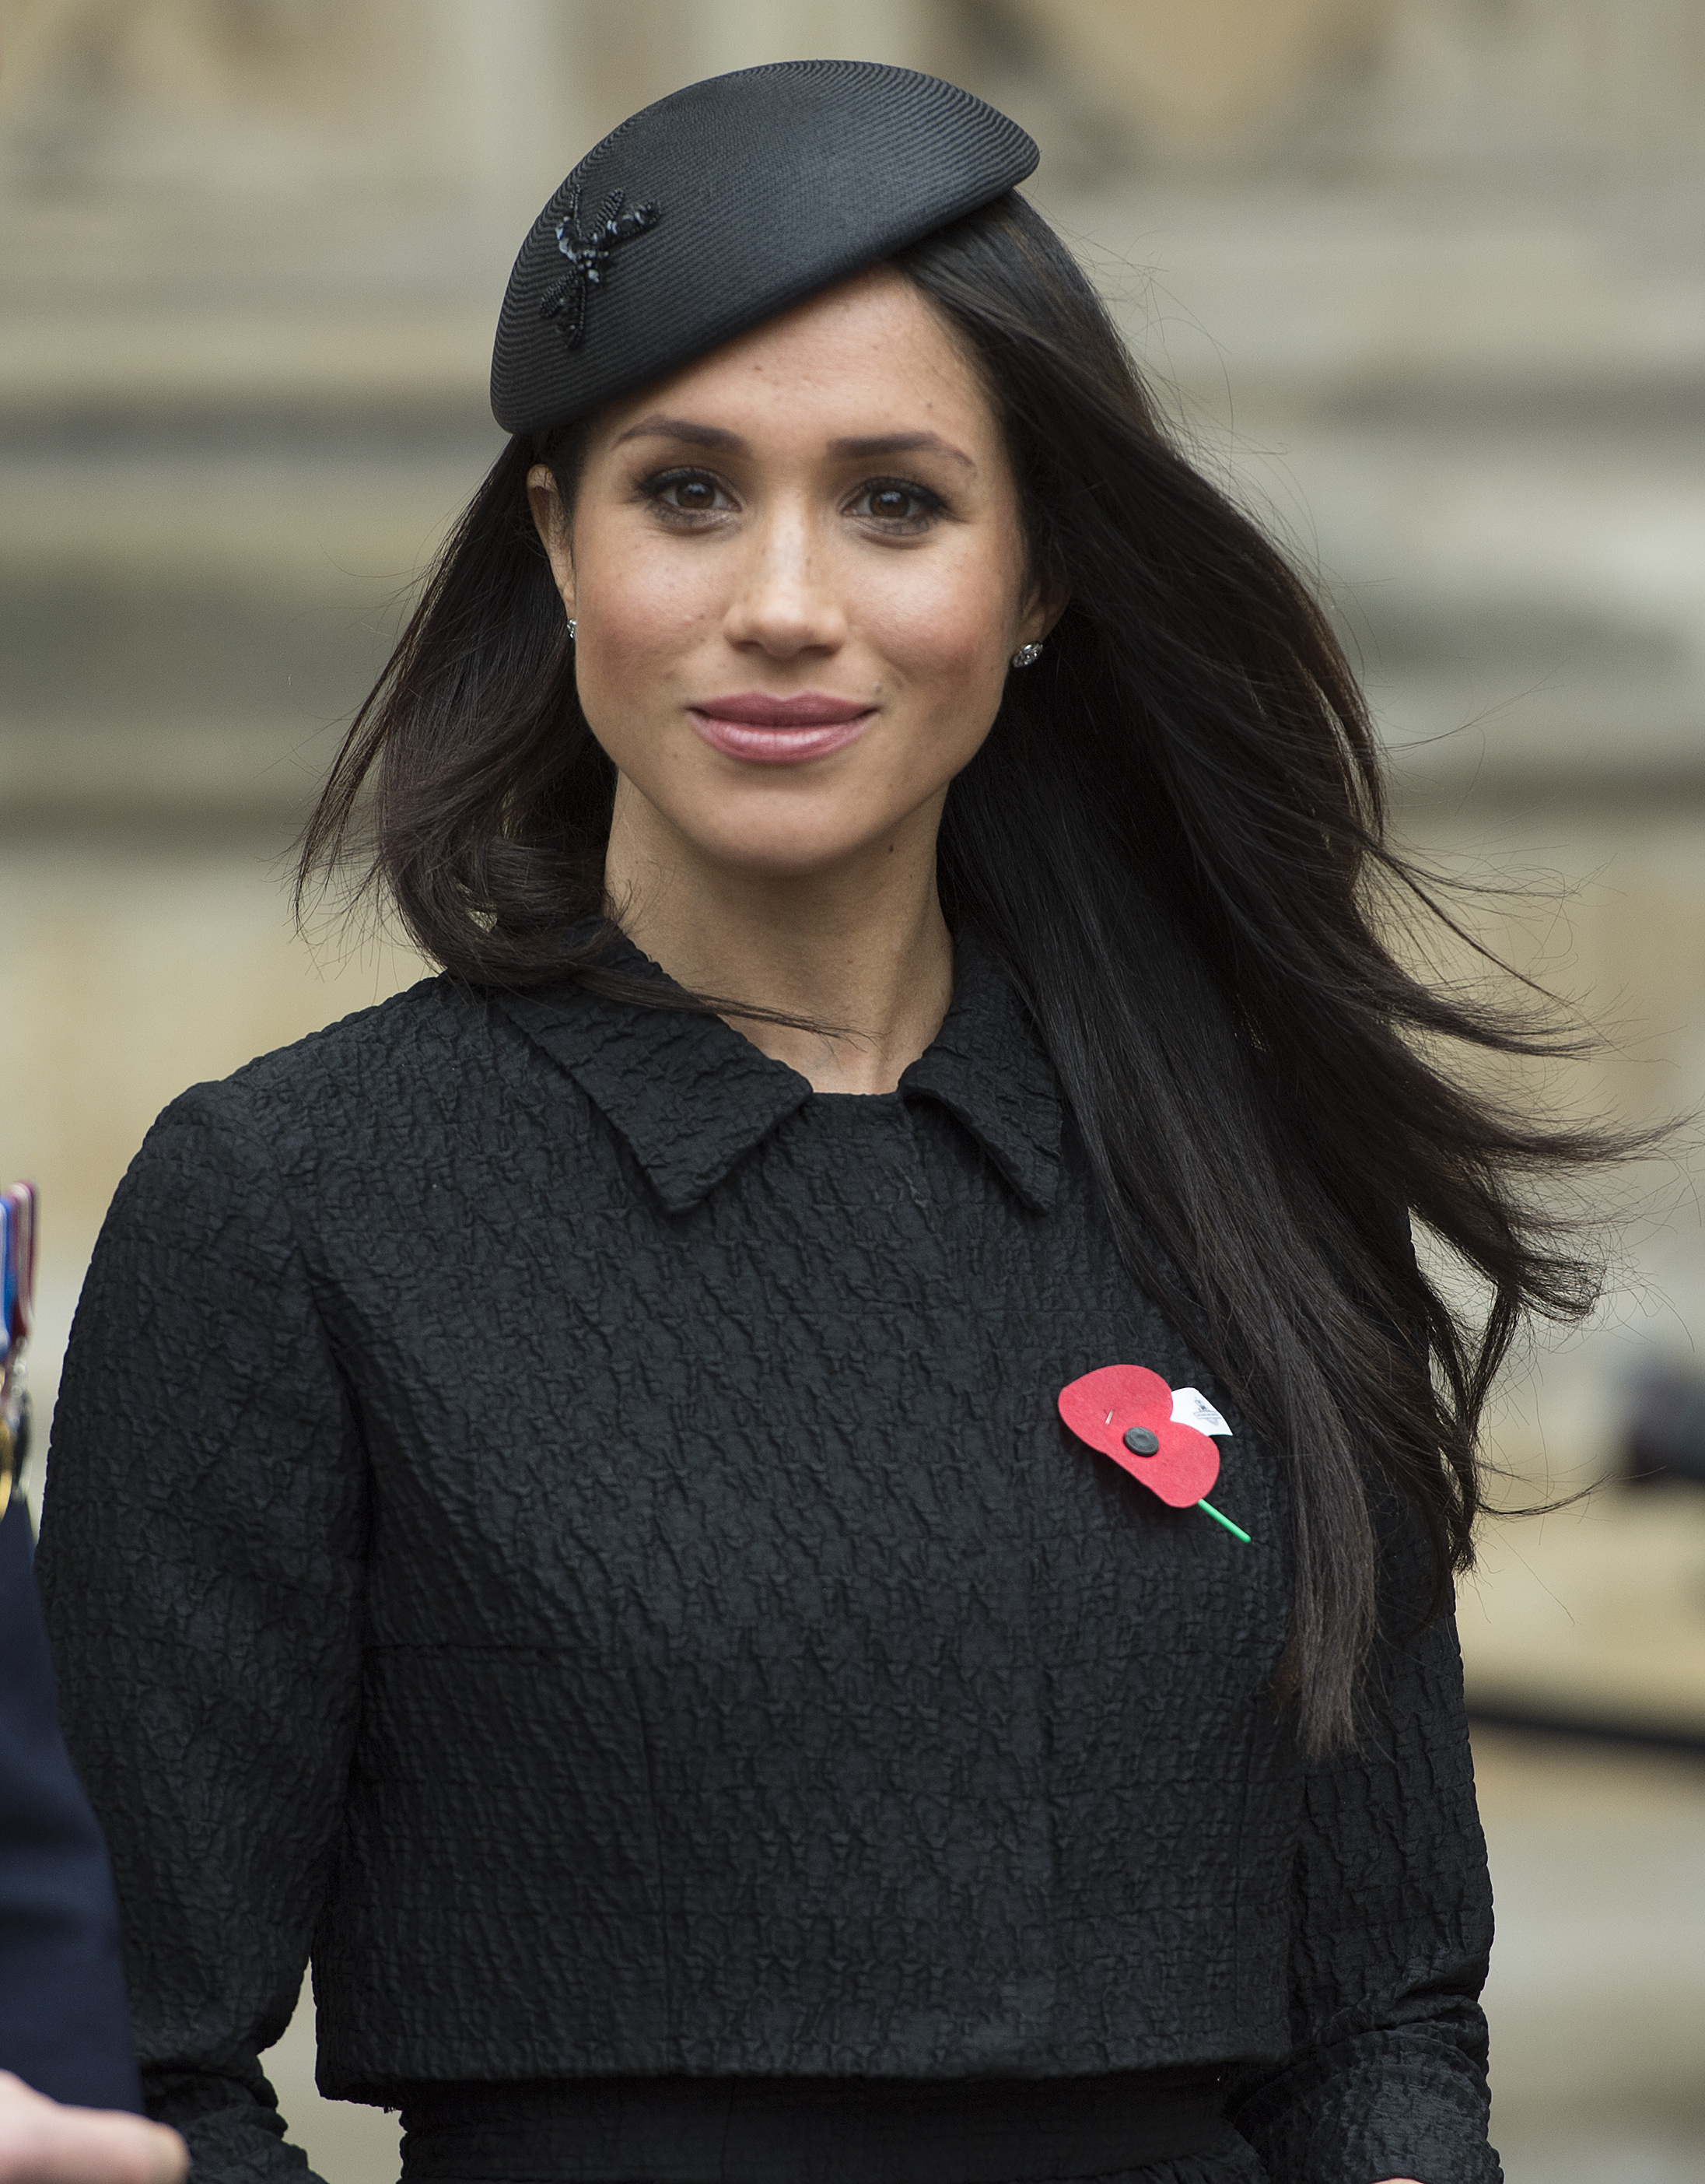 Kensington-Palace-Silent-On-Reports-Of-Meghan-Markles-Fathers-Heart-Surgery